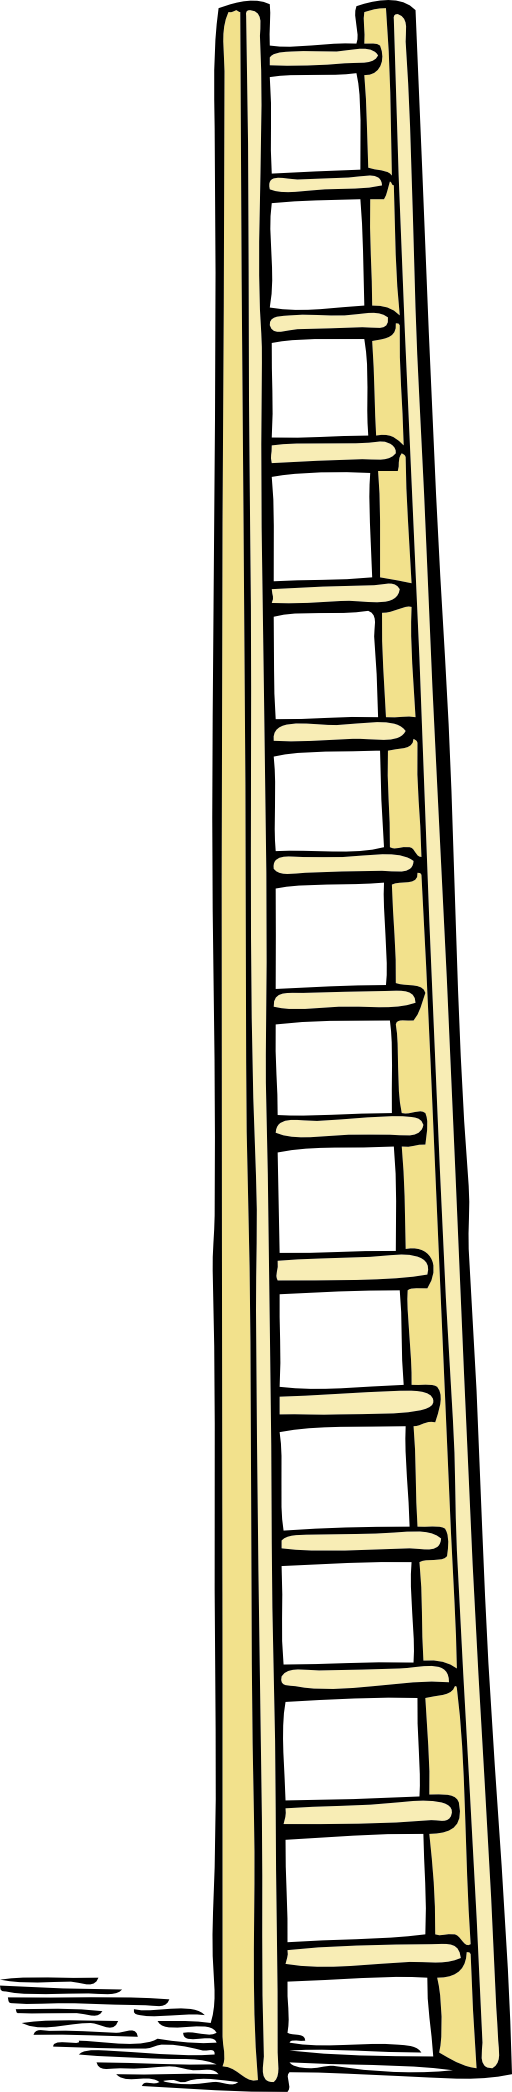 tall ladder clipart i2clipart royalty free public Firefighters Fireman Clip Art Firefighter Symbol Clip Art